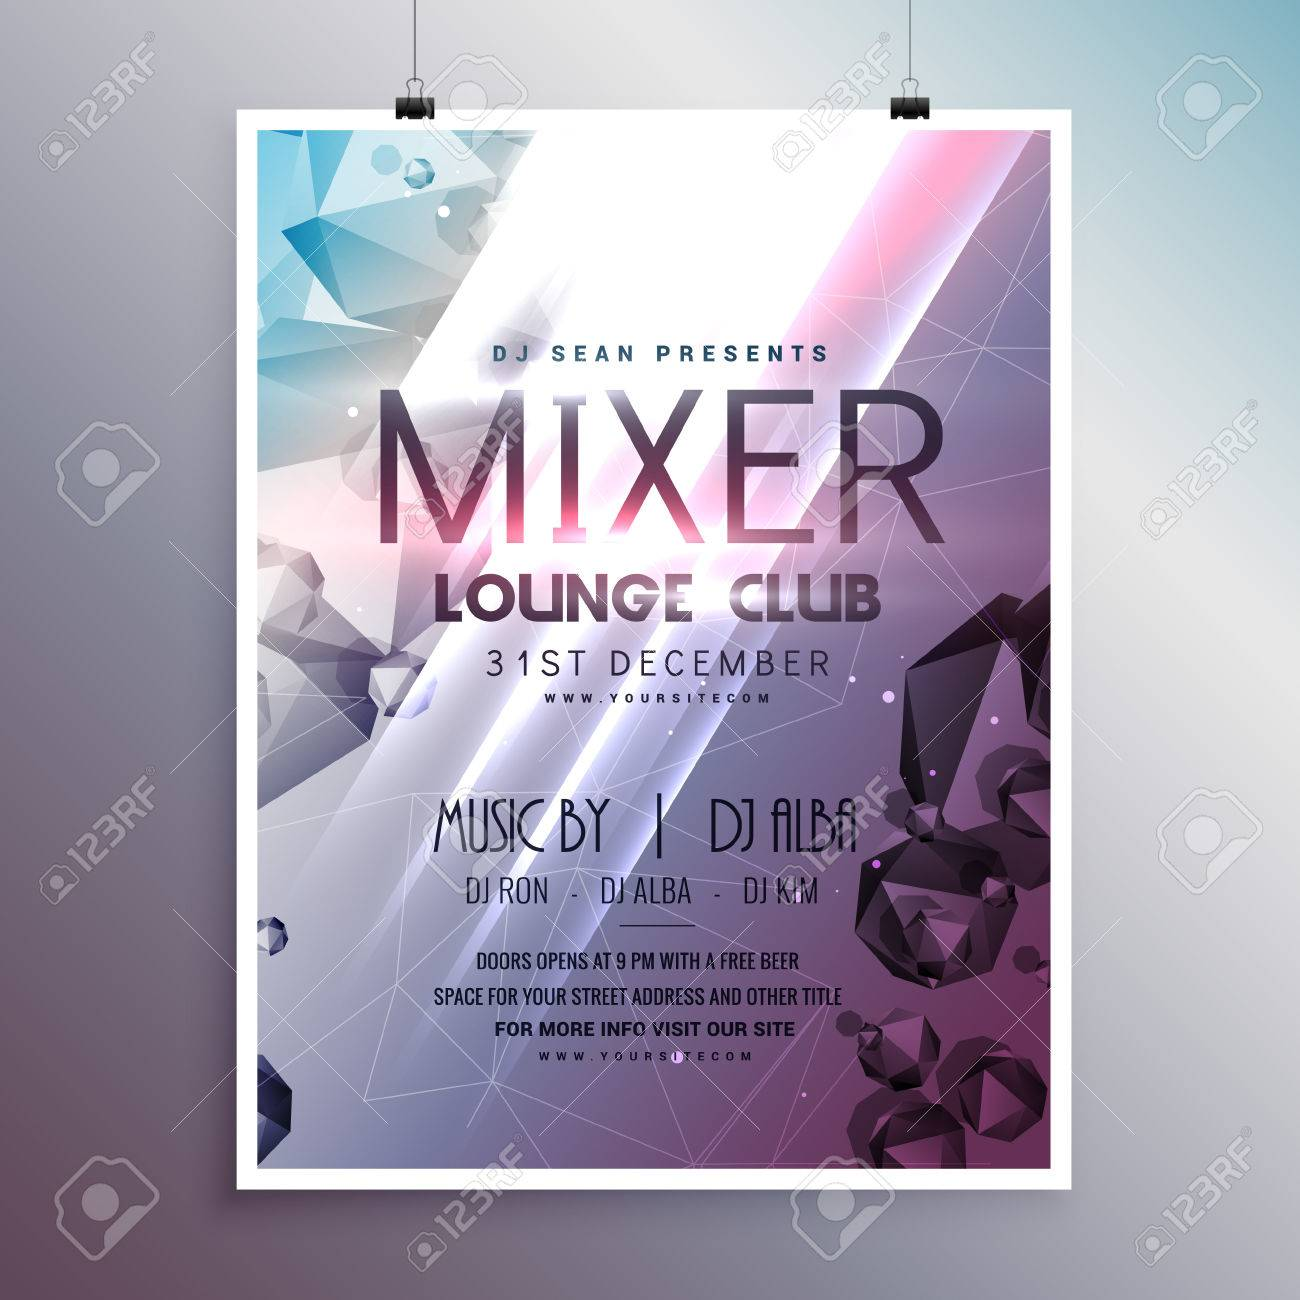 flyer poster template card with promotional details royalty free